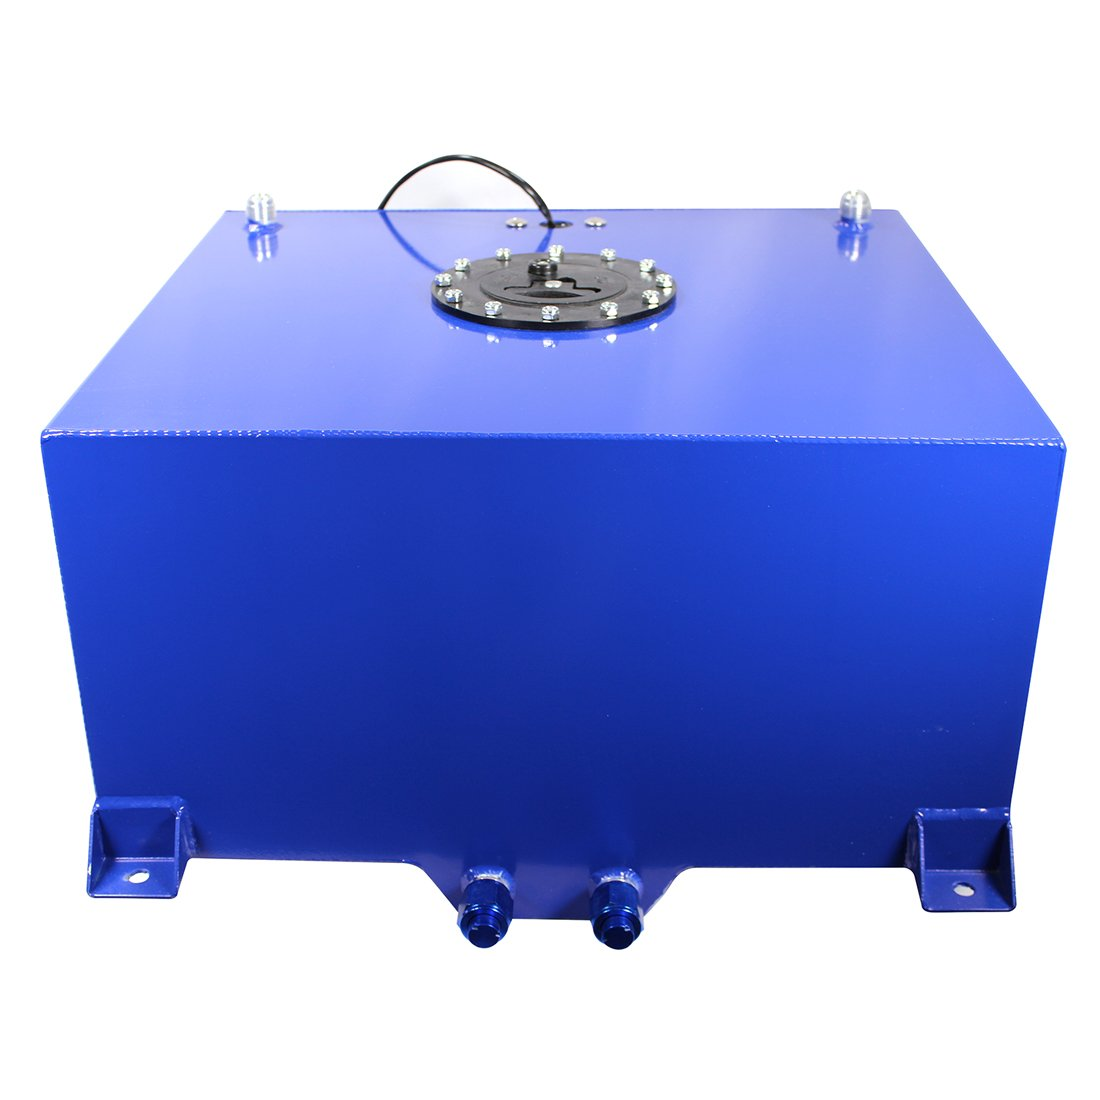 20 Gallon OEM Polished Fuel Cell Gas Tank with Level Sender Hot Rod,Blue